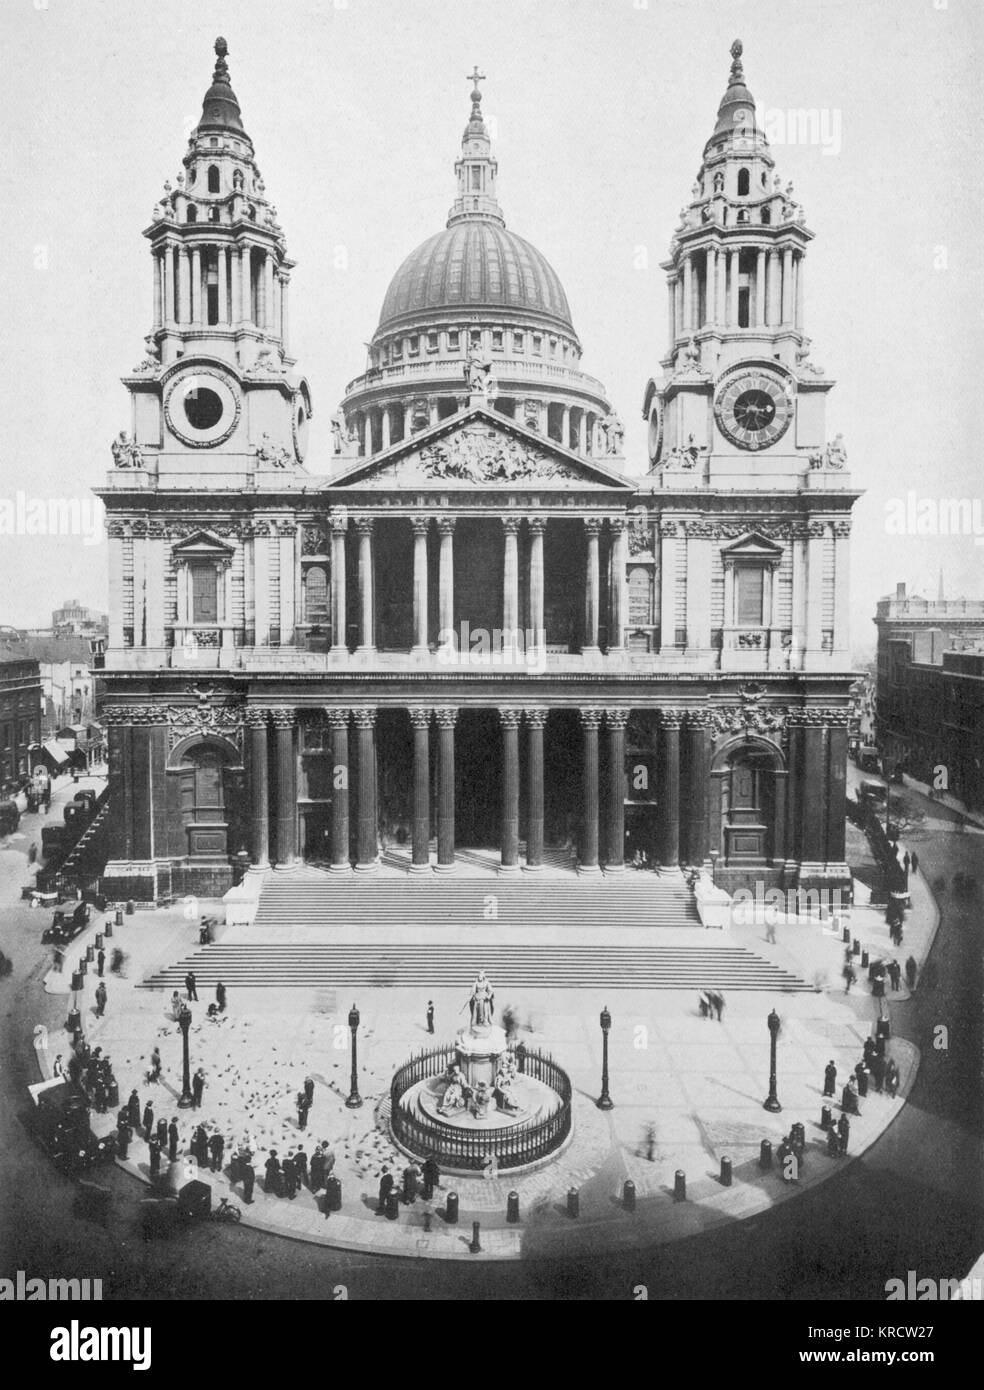 Imposing view of St. Paul's Catherdal Date: 1920s - Stock Image